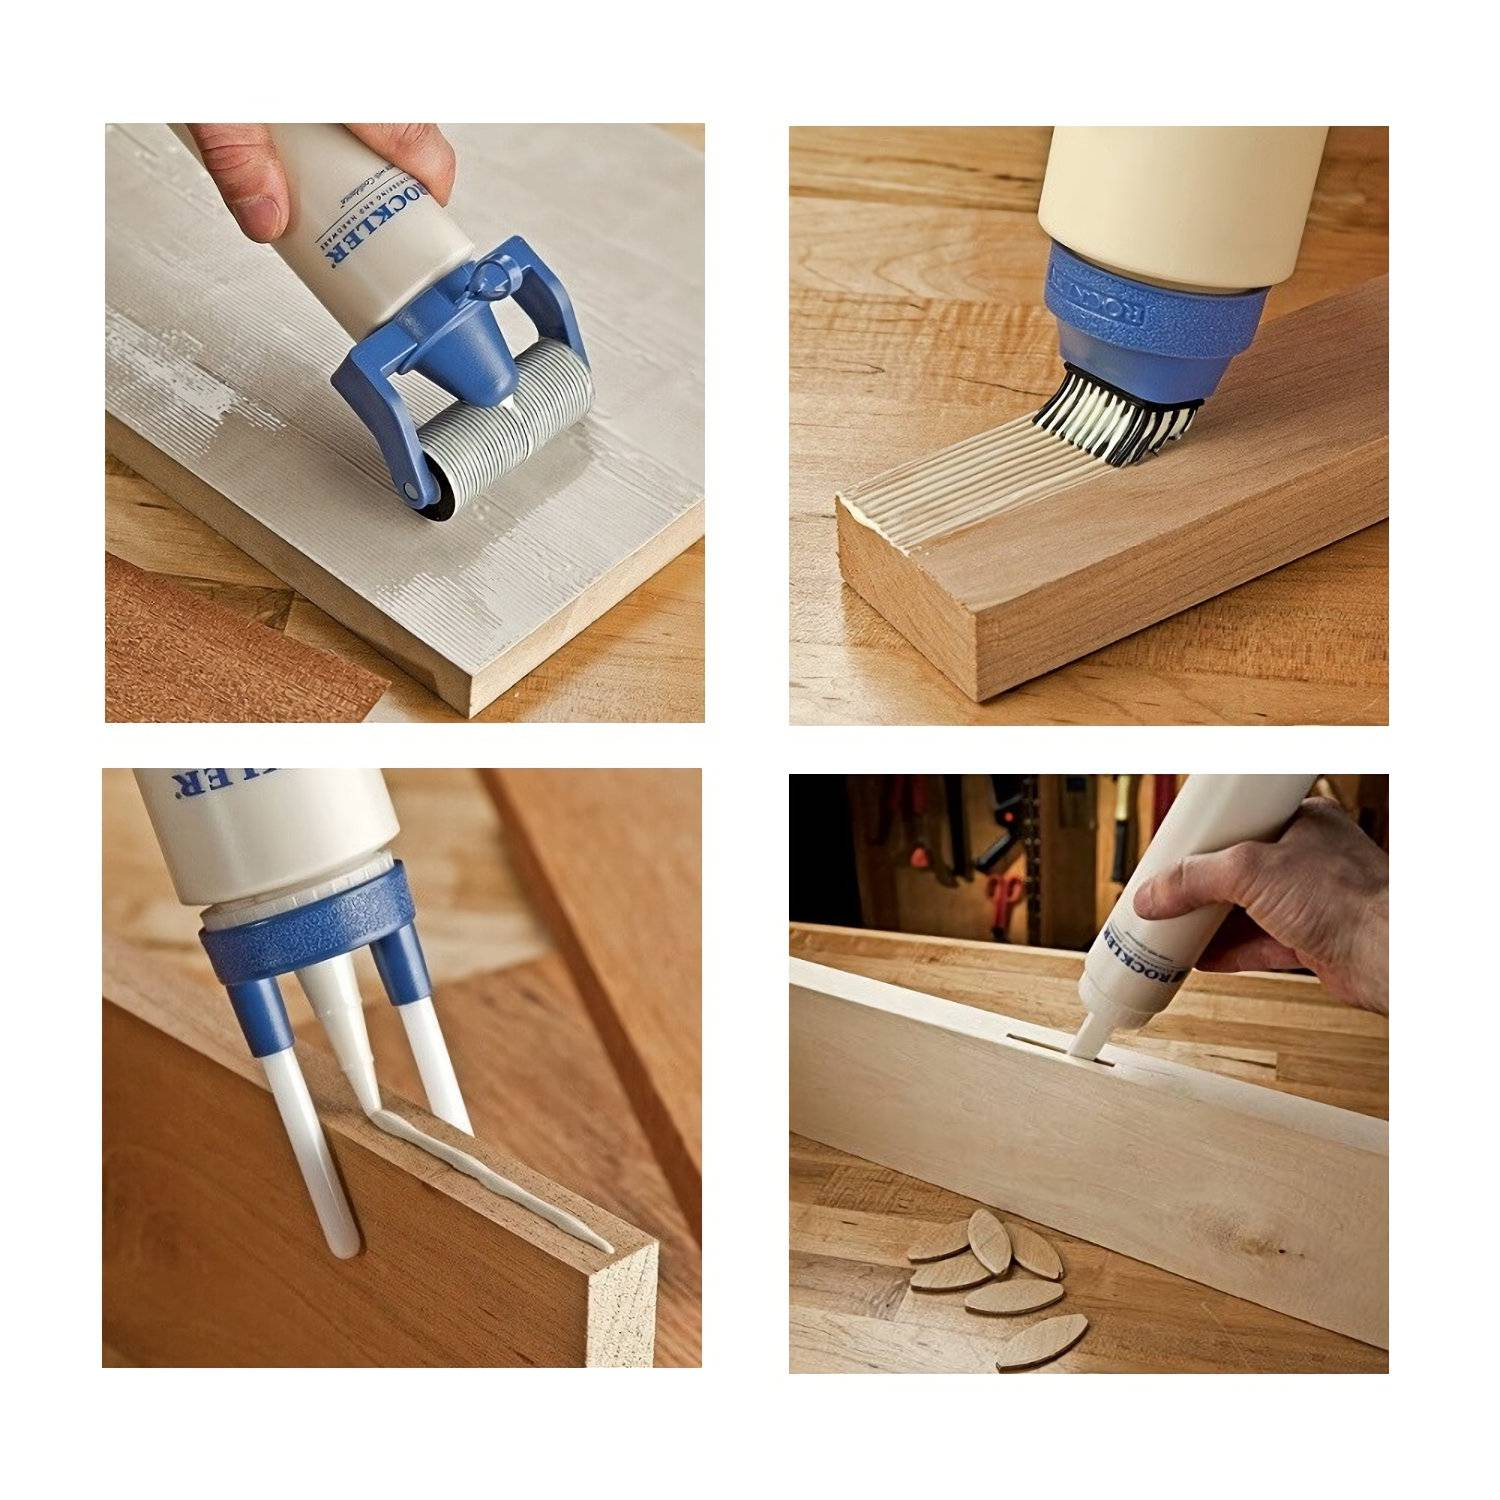 lijm_applicator_set_Rockler.jpg